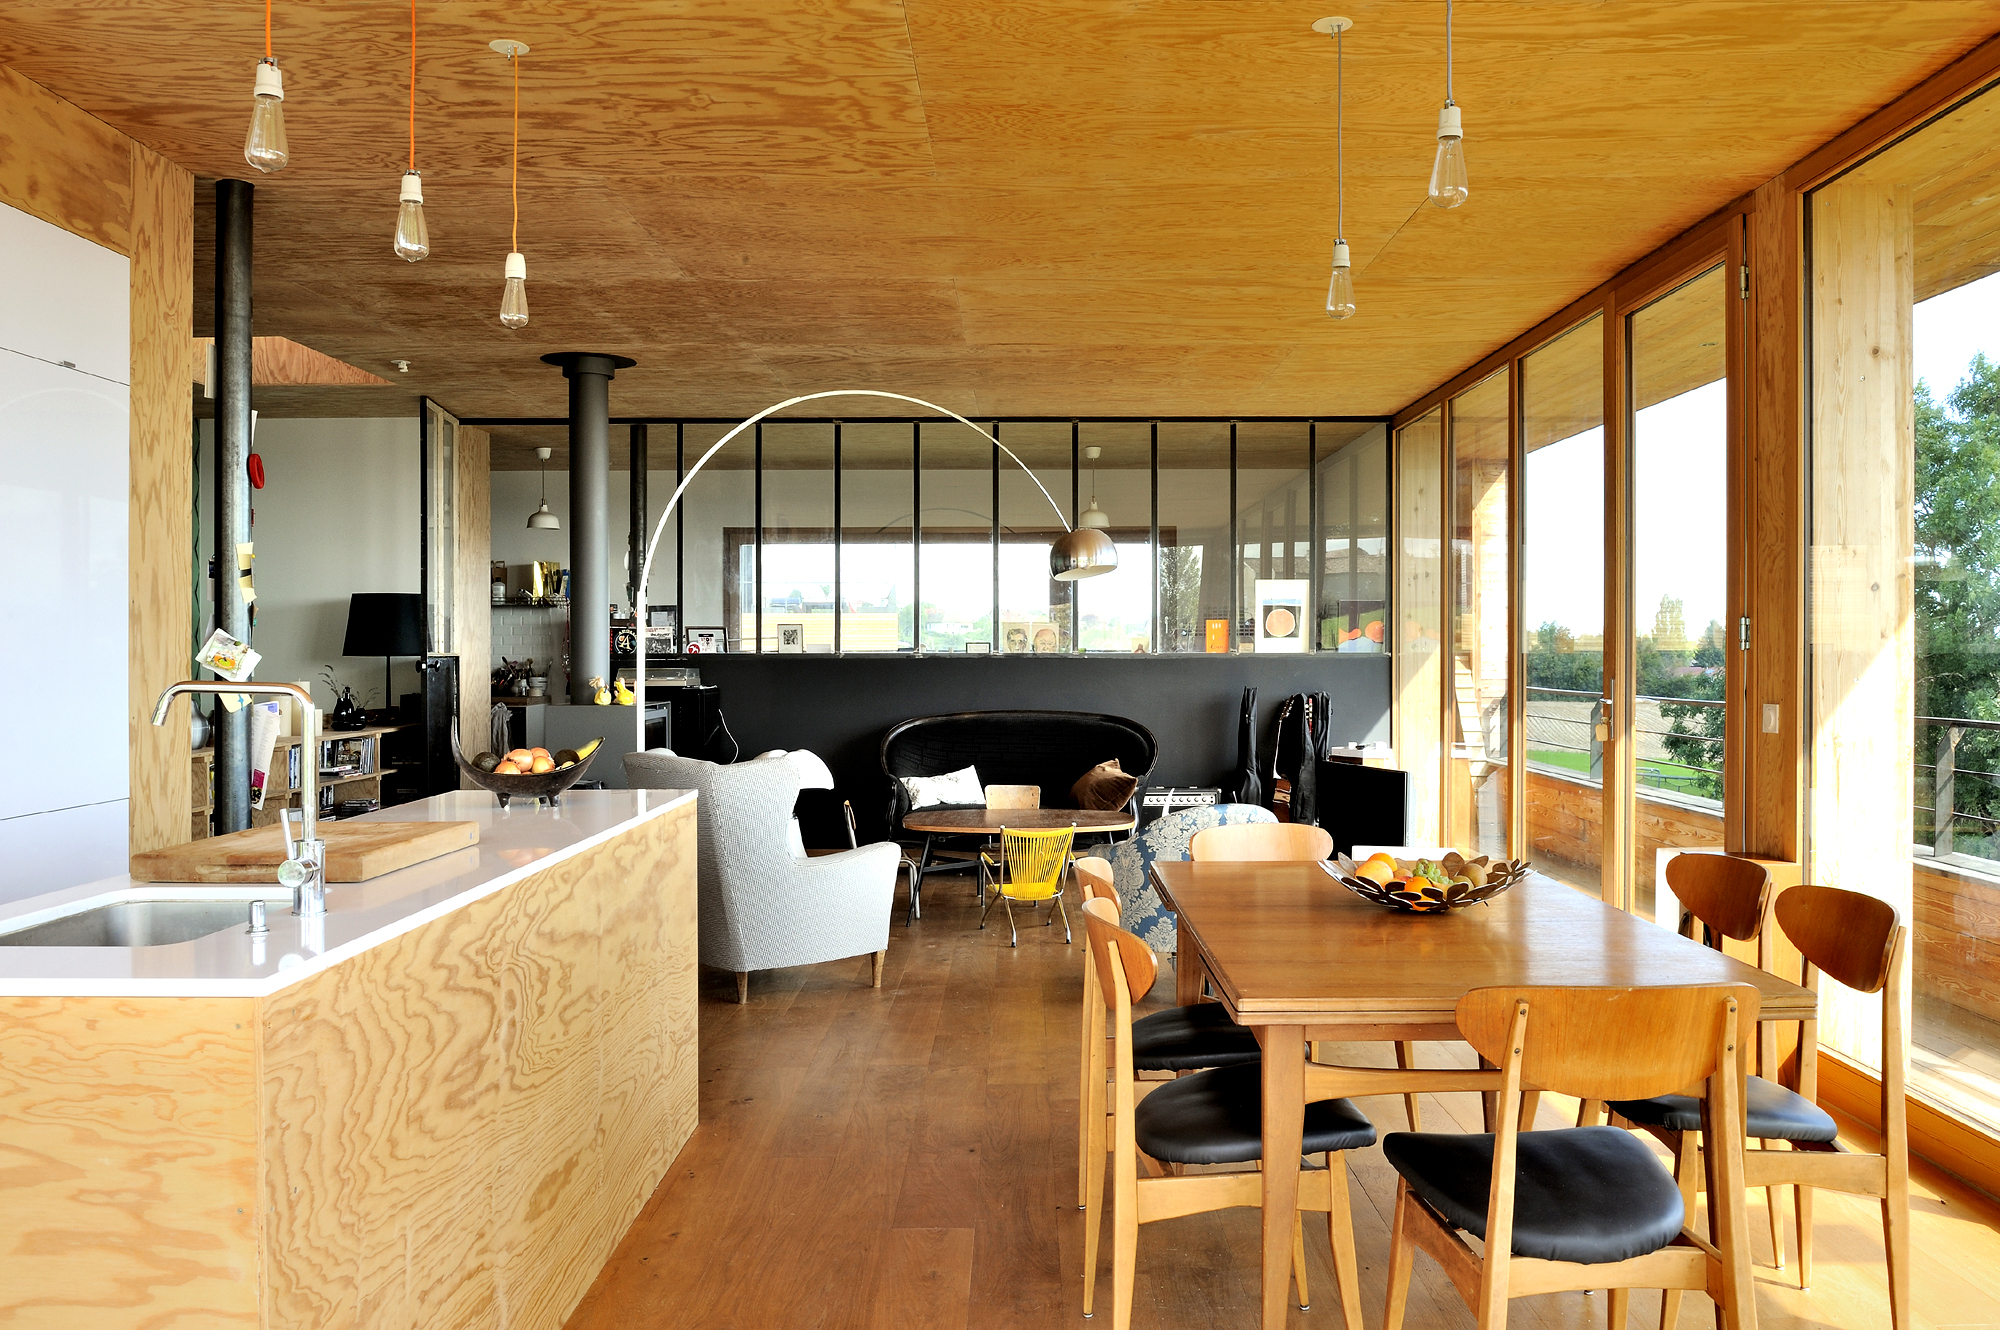 Amenagement interieur maison en bois for Interieur de maison contemporaine photo